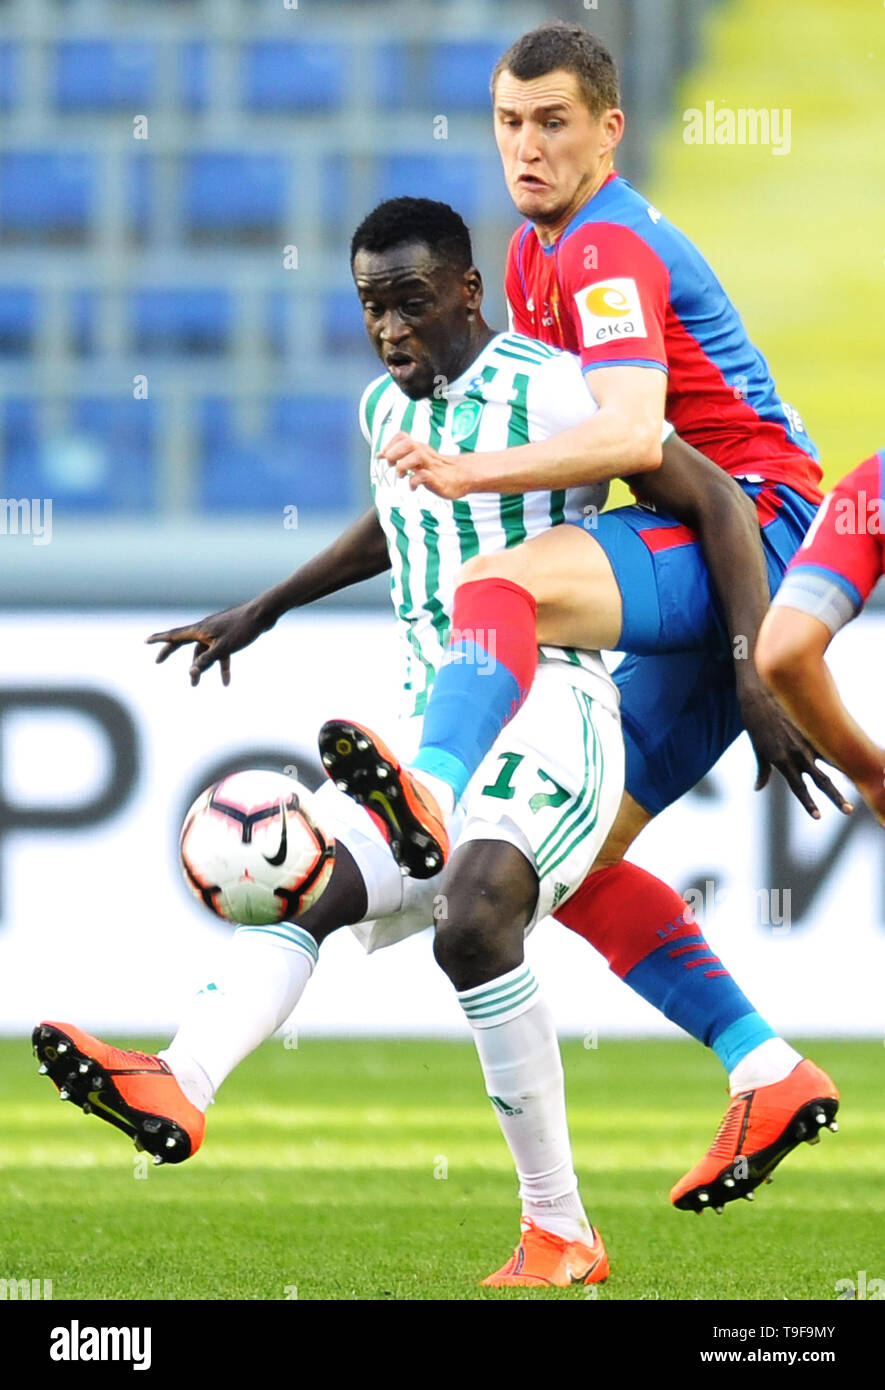 Moscow, Russia. 18th May, 2019. MOSCOW, RUSSIA - MAY 18: Viktor Vasin of PFC CSKA Moscow and Ablaye Mbengue of FC Akhmat Grozny vie for the ball during the Russian Football League match between PFC CSKA Moscow and FC Akhmat Grozny at Arena CSKA stadium on May 18, 2019 in Moscow, Russia. (Photo by Epsilon/Getty Images) Credit: ITAR-TASS News Agency/Alamy Live News - Stock Image